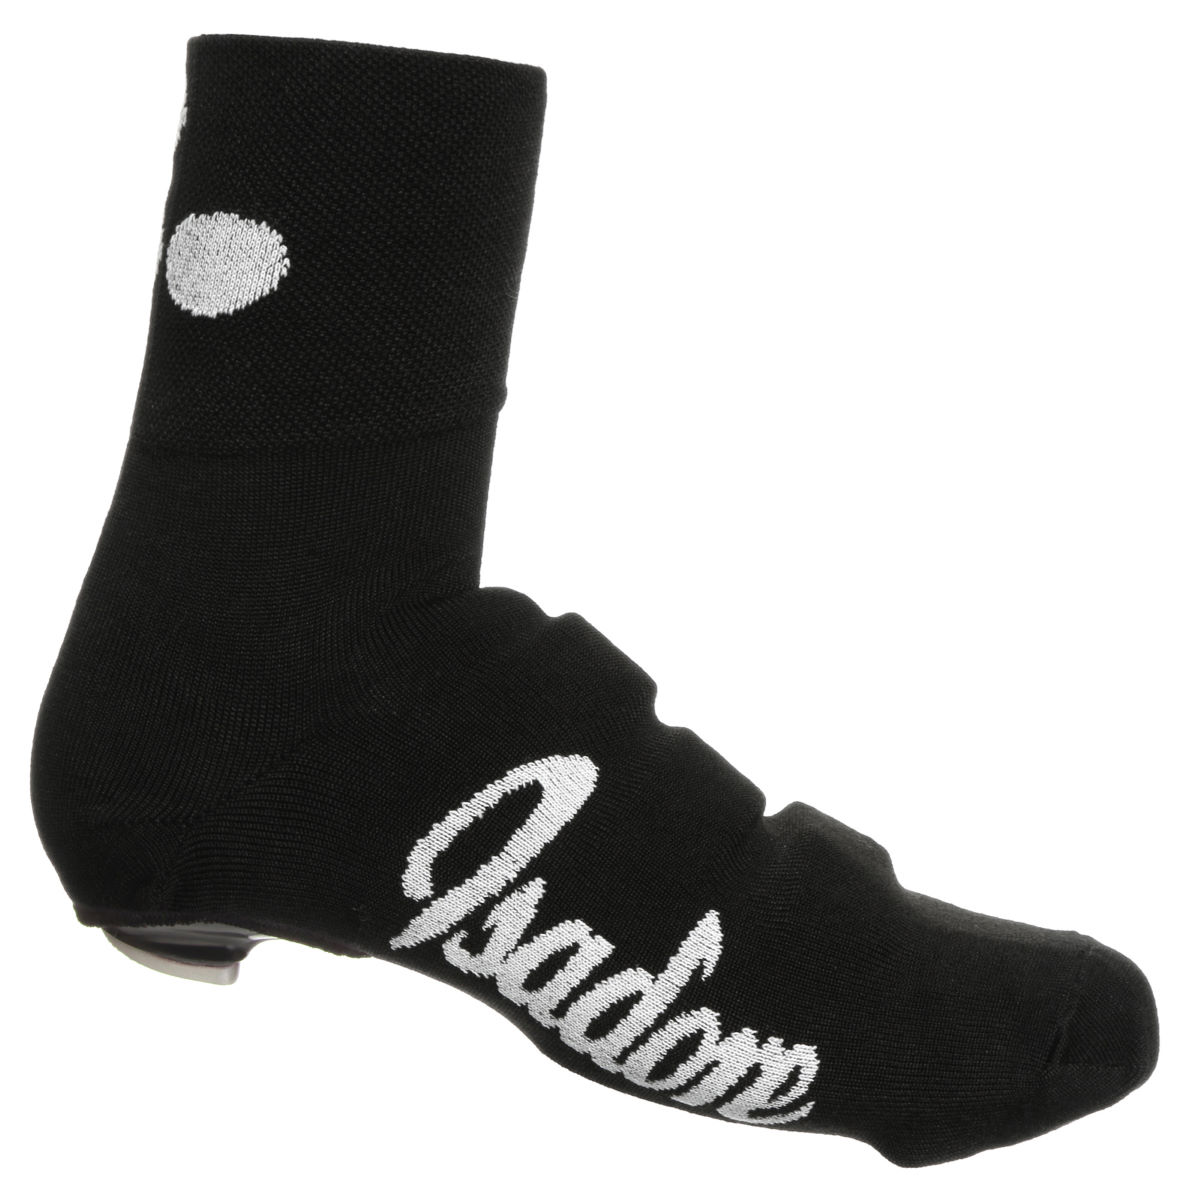 Couvre-chaussures Isadore - S/M Noir Couvre-chaussures